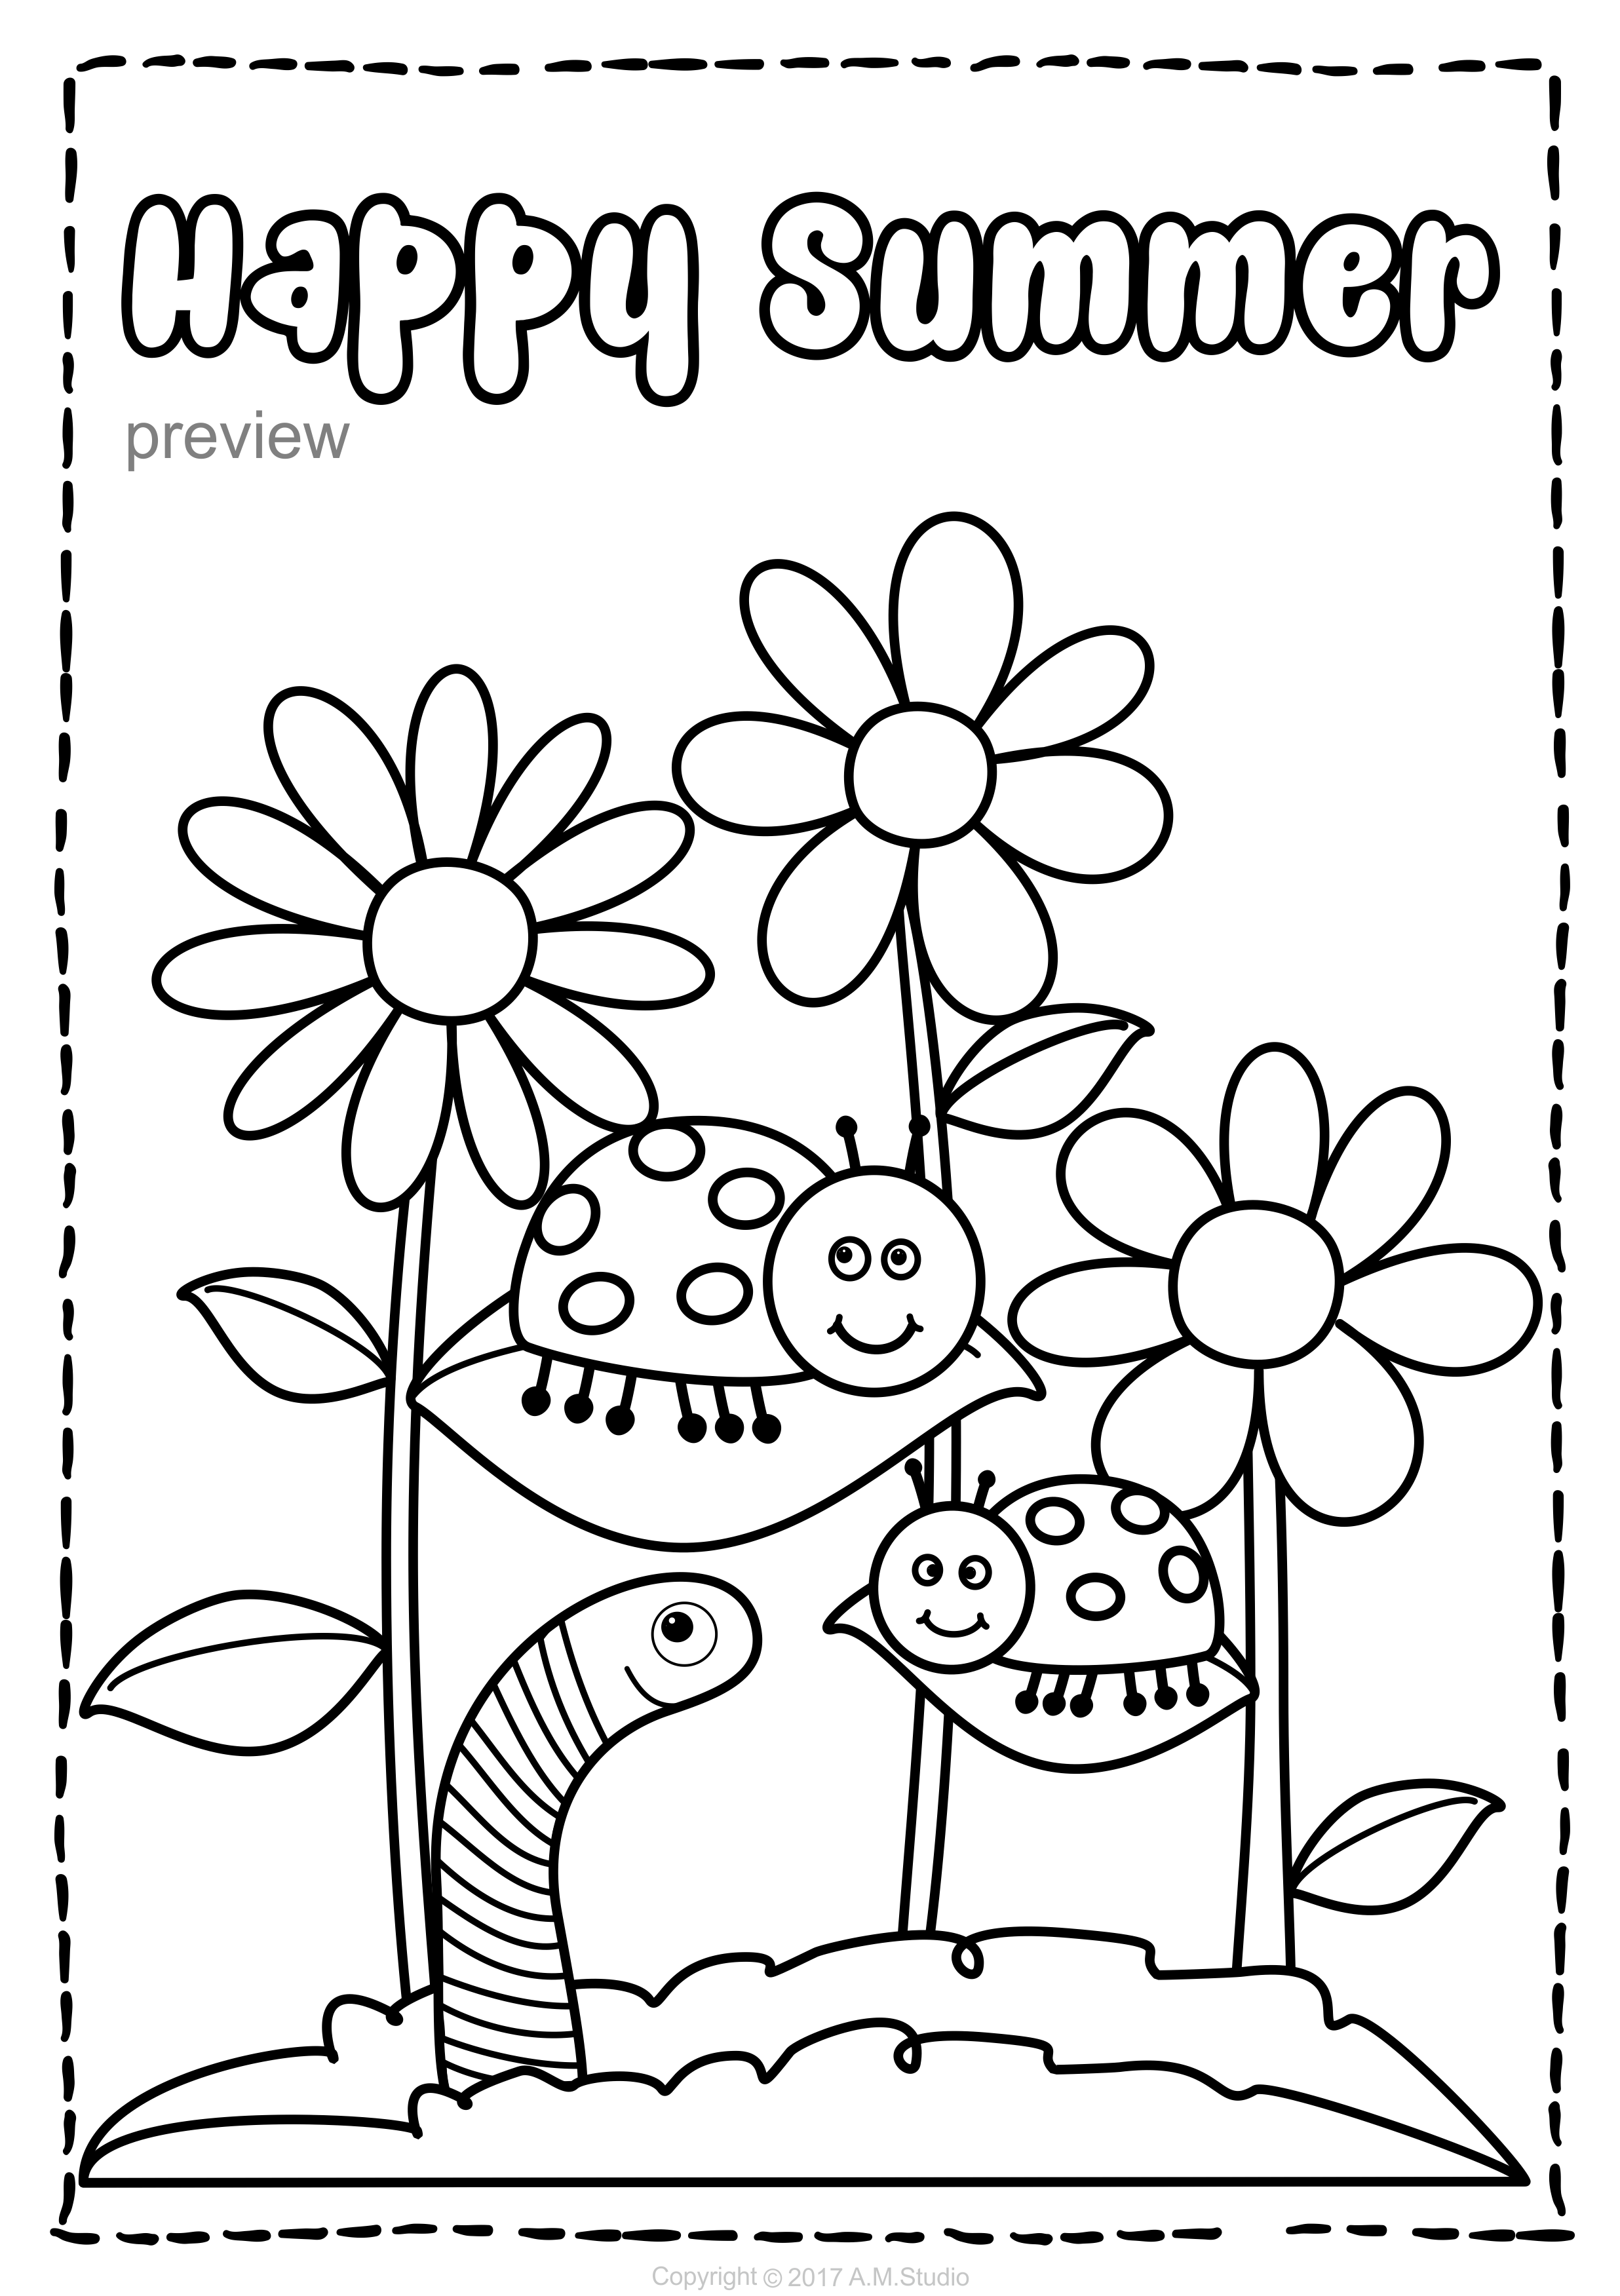 Pin By Melissa Courtney On Coloring Pages Summer Coloring Pages Princess Coloring Pages Coloring Pages